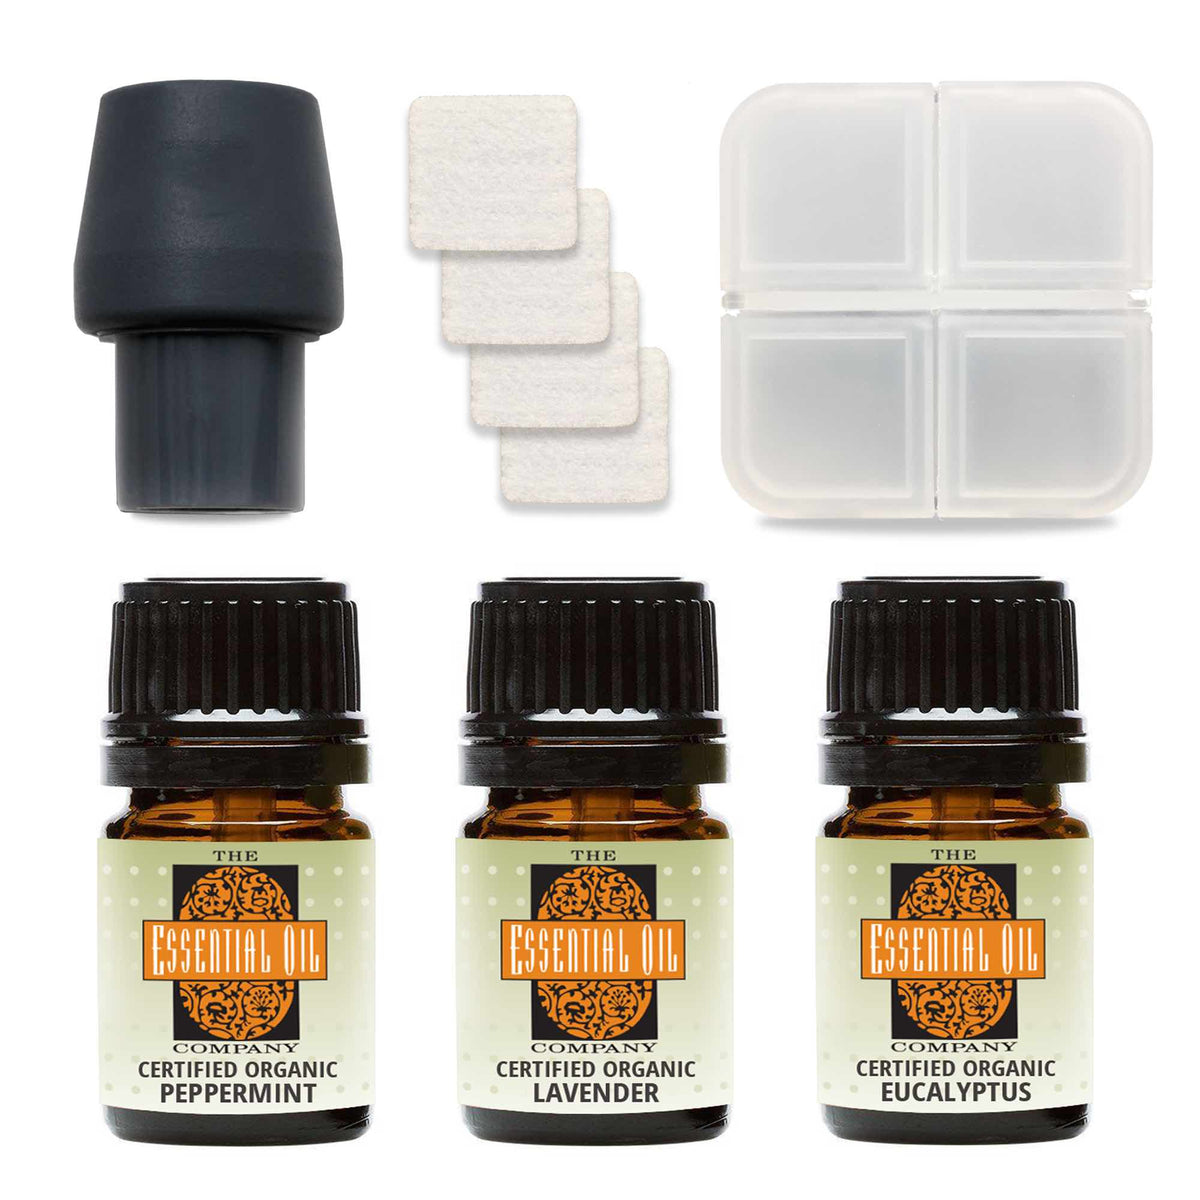 aroma ready diffuser instructions